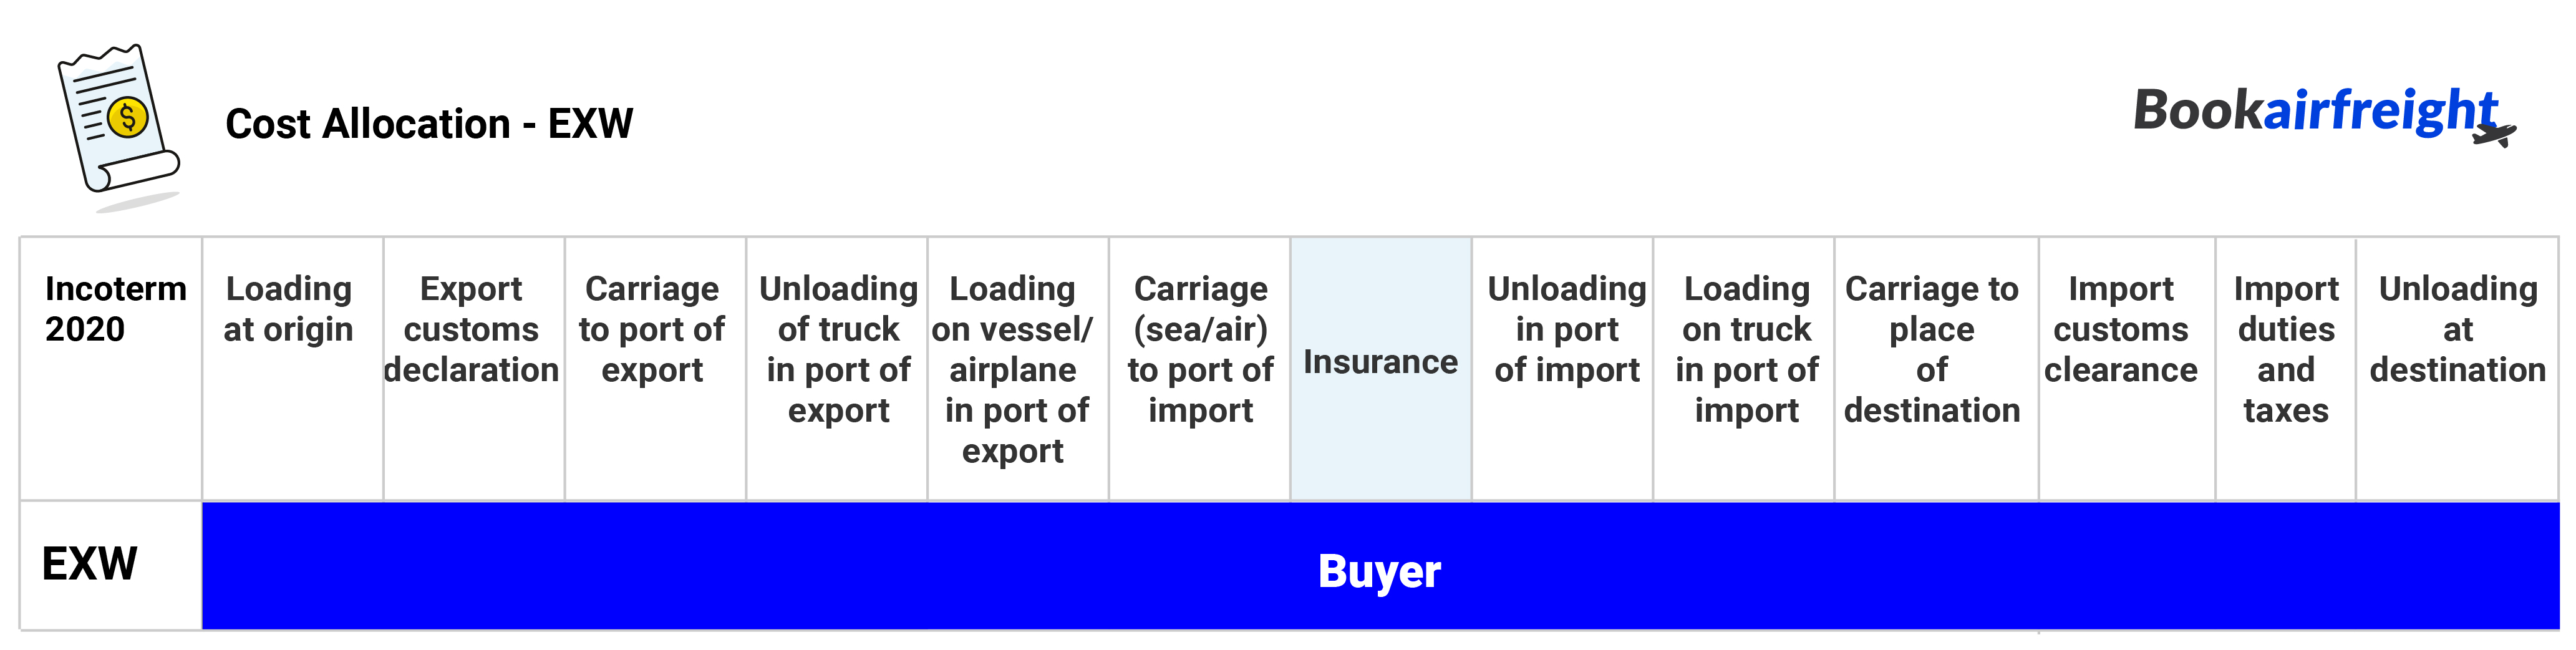 Cost allocation - who should pay what under EXW: